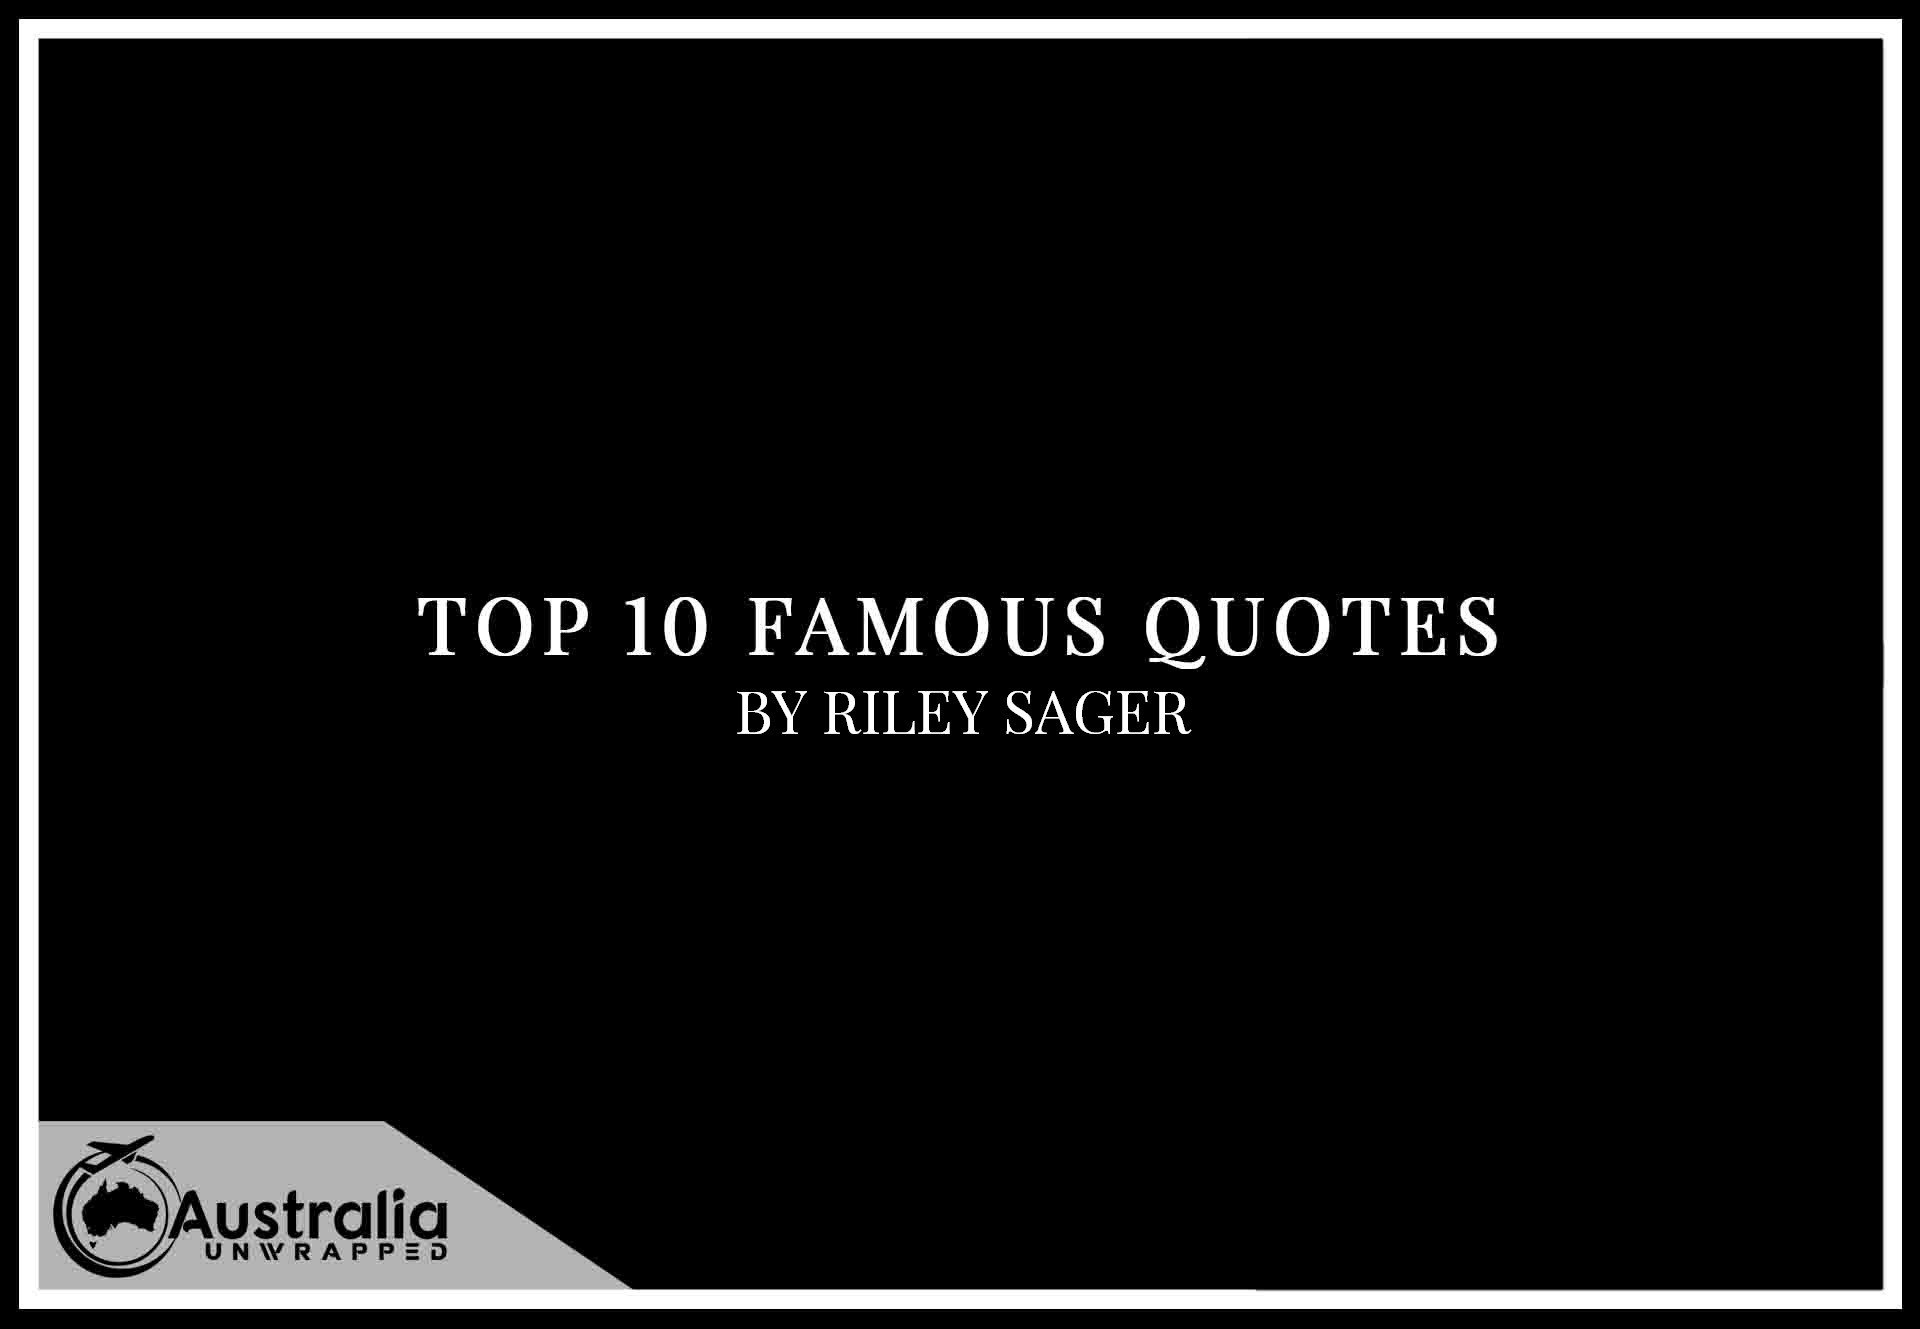 Top 10 Famous Quotes by Author Riley Sager